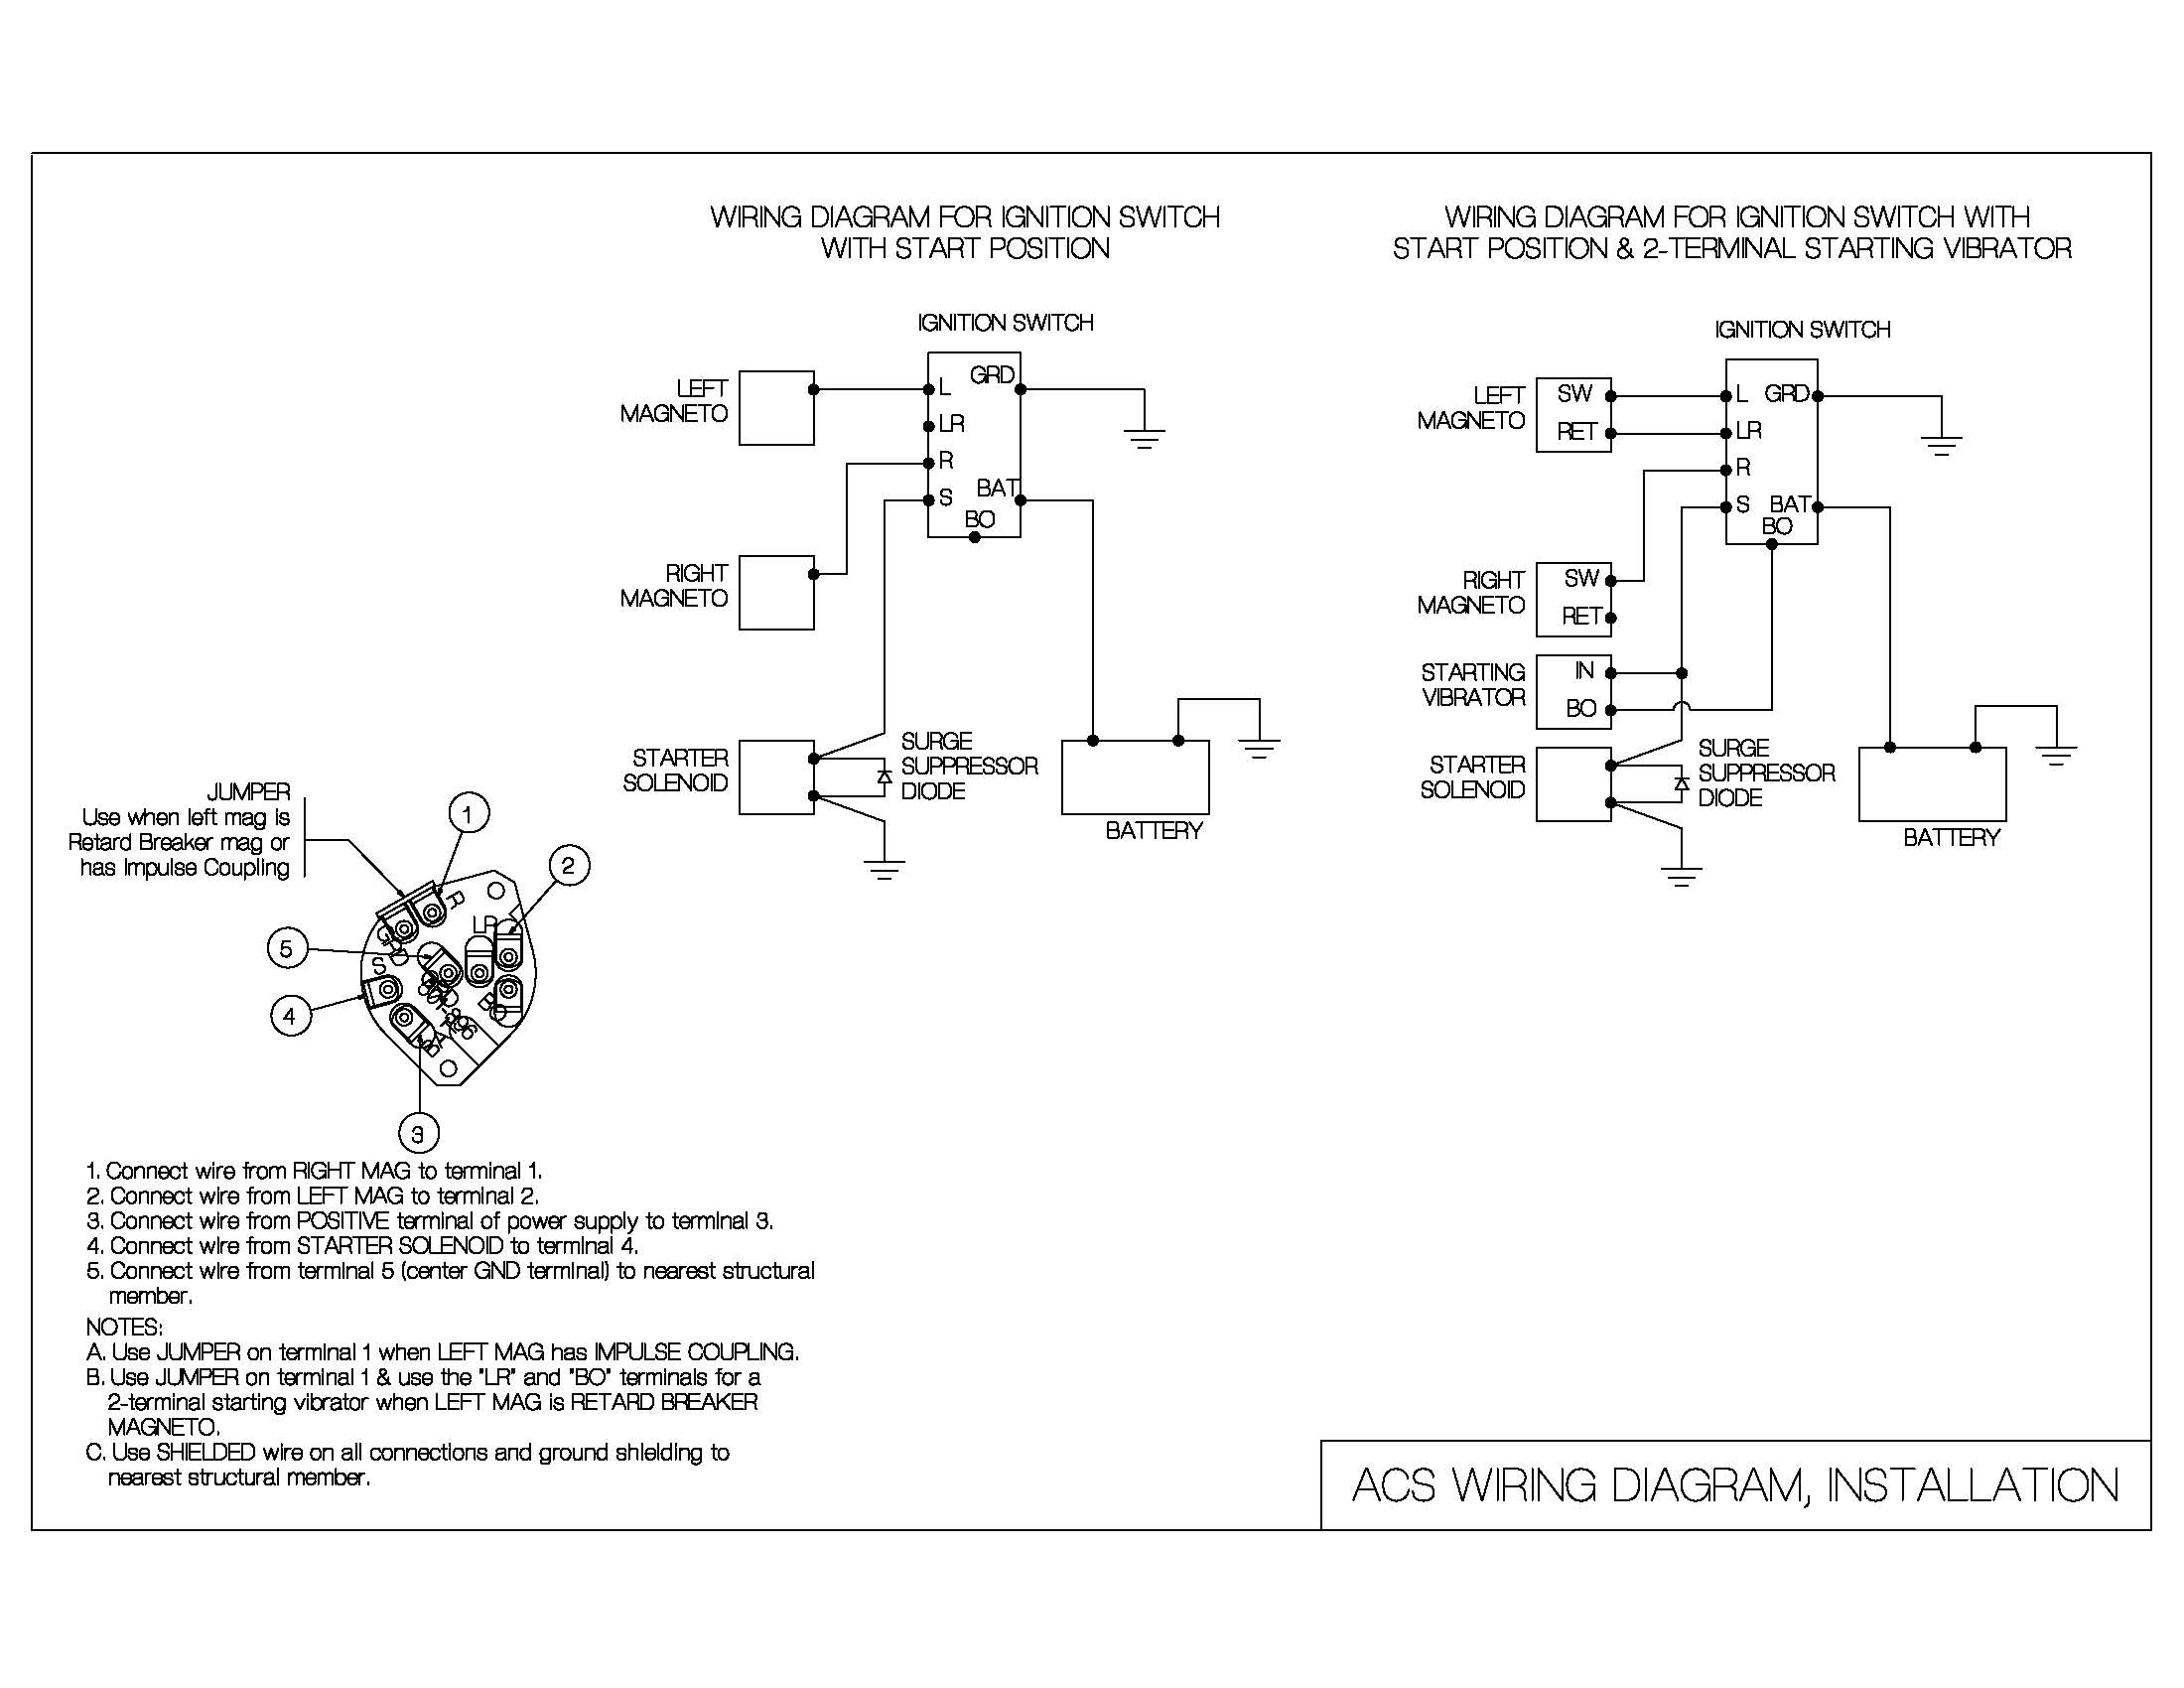 Wiring Diagram For Ignition Switch | Wiring Diagram - Ignition Switch Wiring Diagram